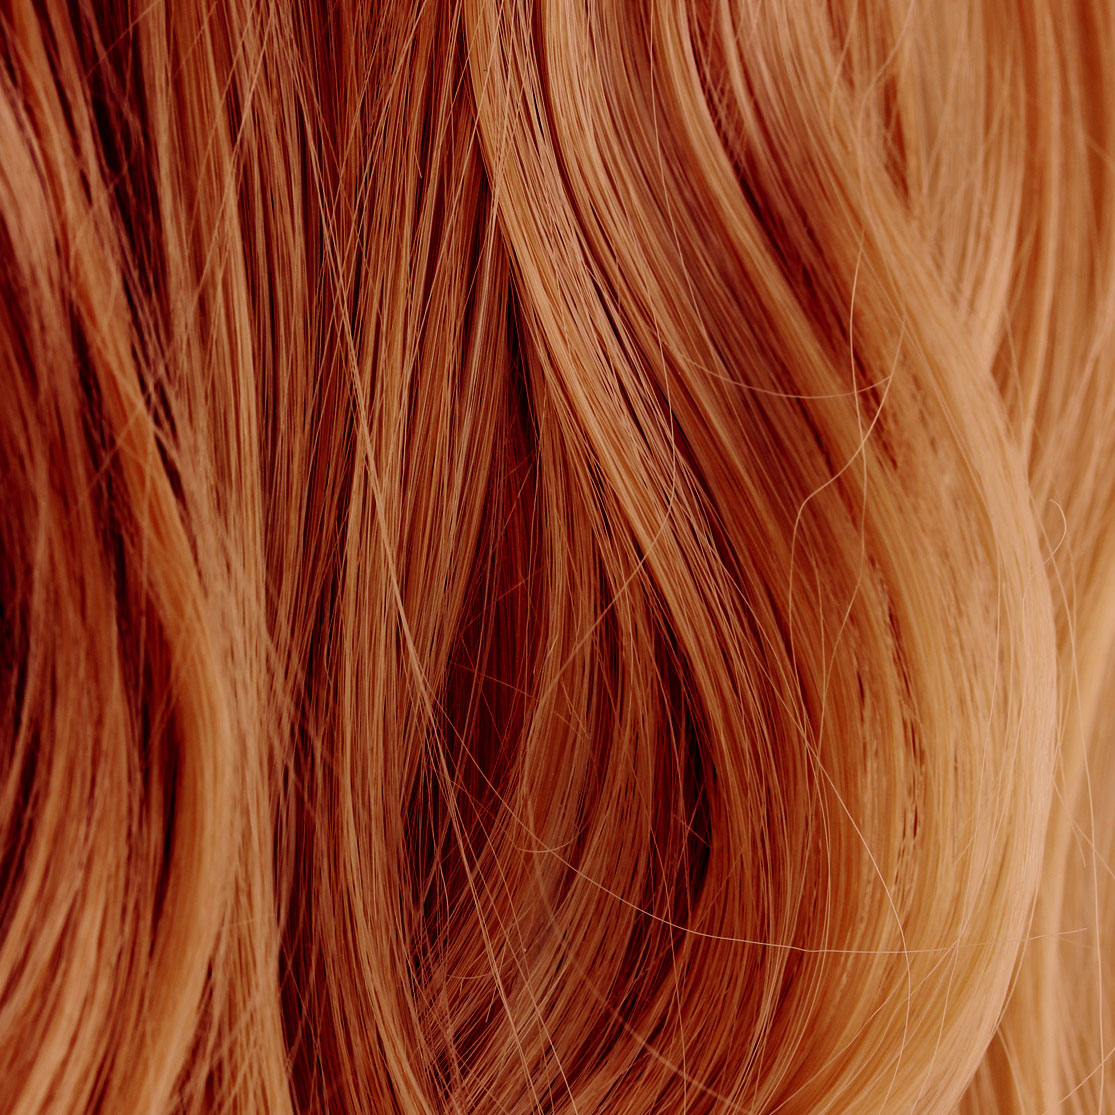 Ginger Blonde Henna Hair Dye Henna Color Lab Henna Hair Dye